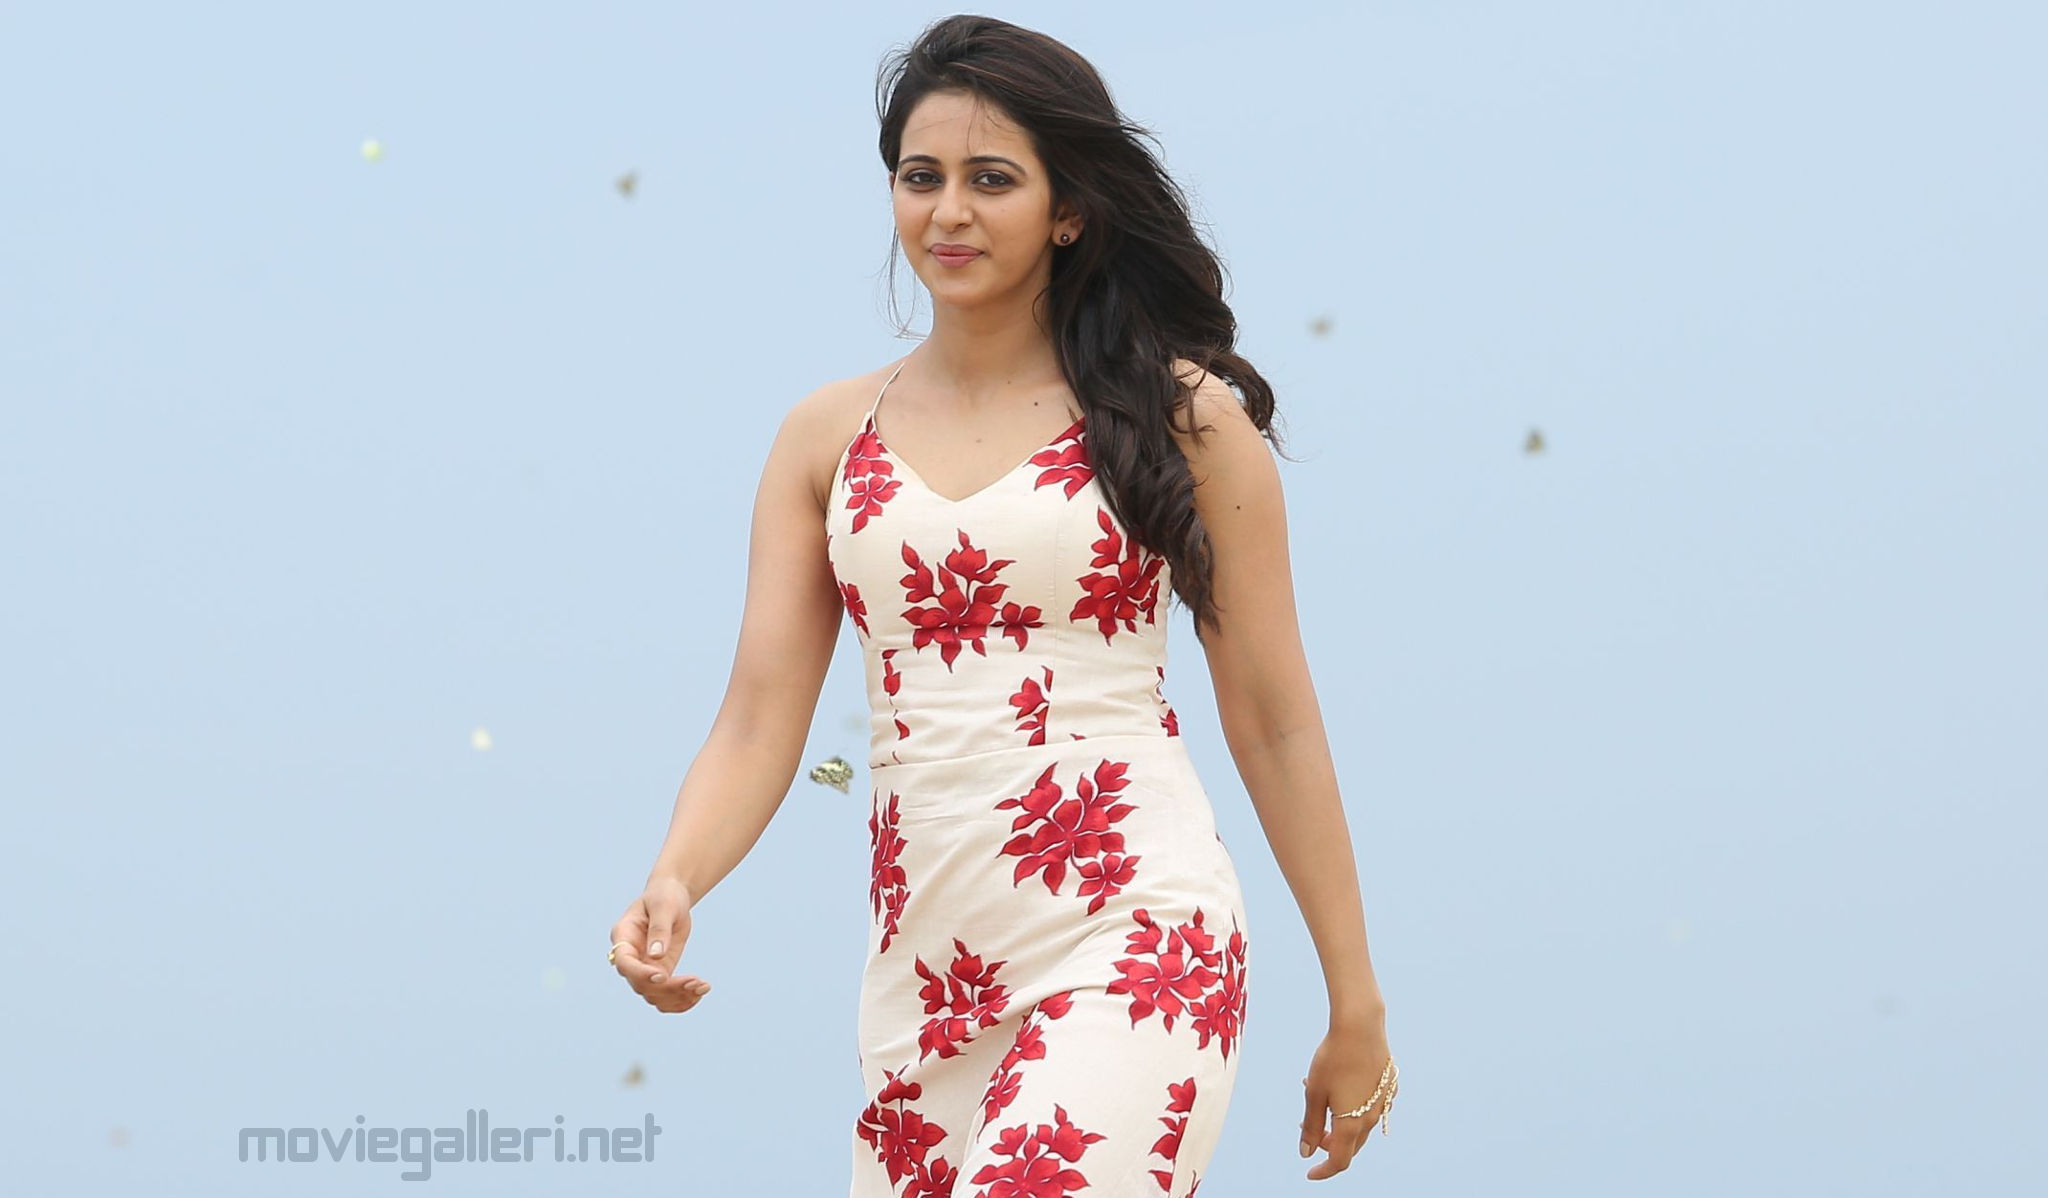 Rakul Preet Singh will be seen as a girl next door in Khakee